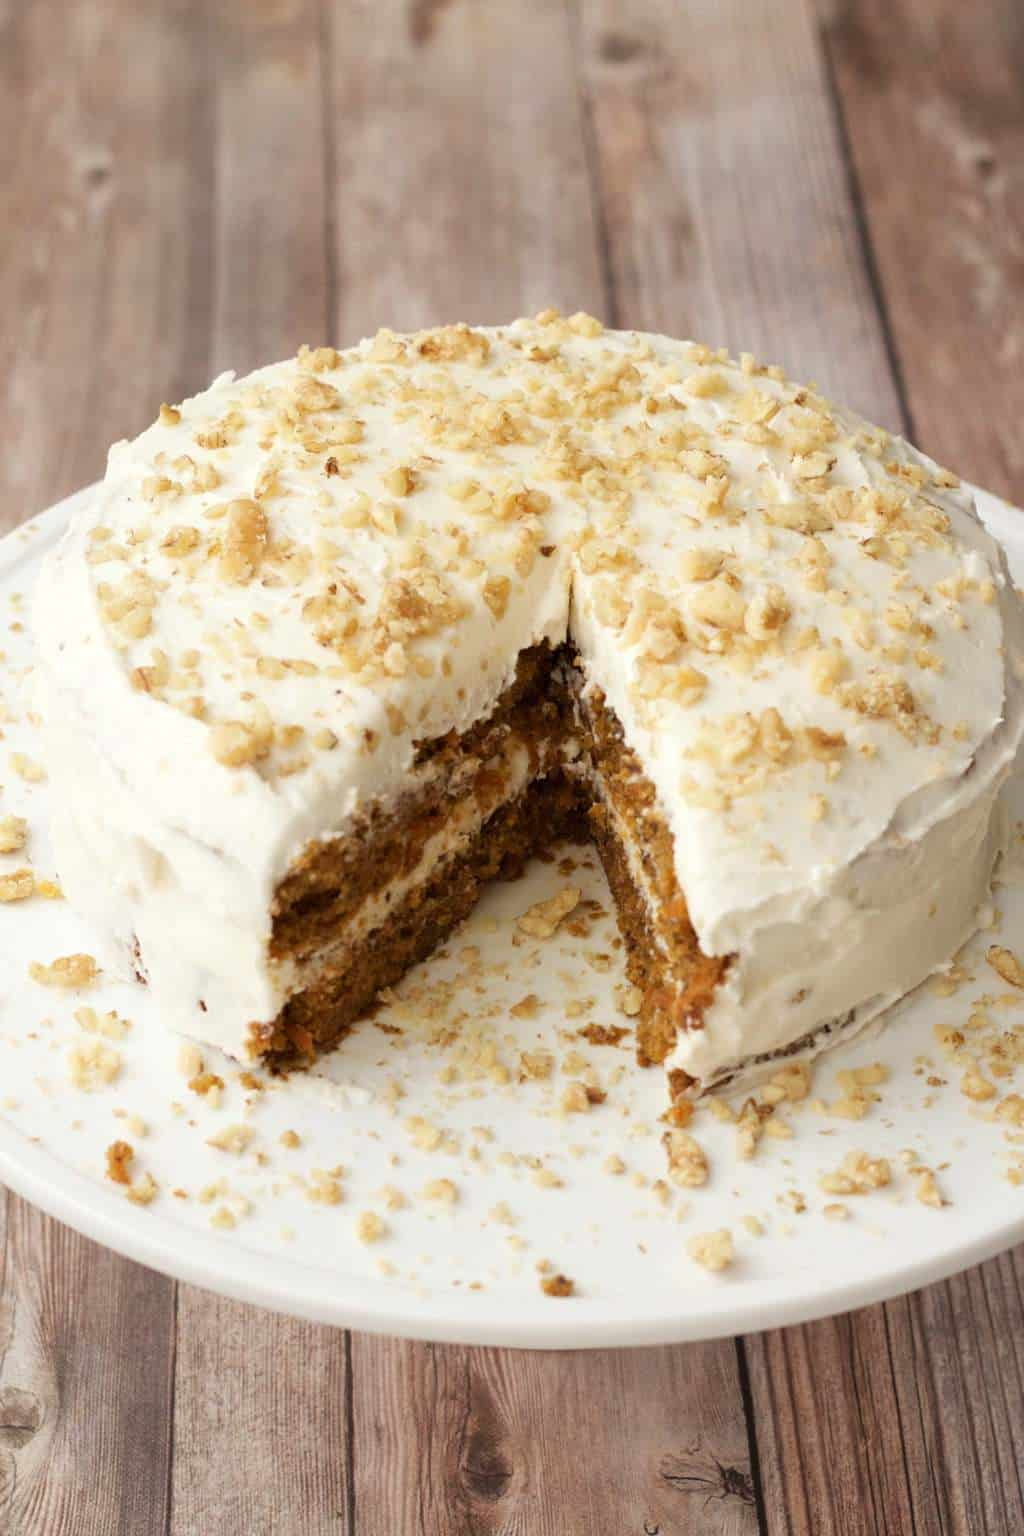 Vegan carrot cake topped with a lemon buttercream frosting and crushed walnuts on a white cake stand.